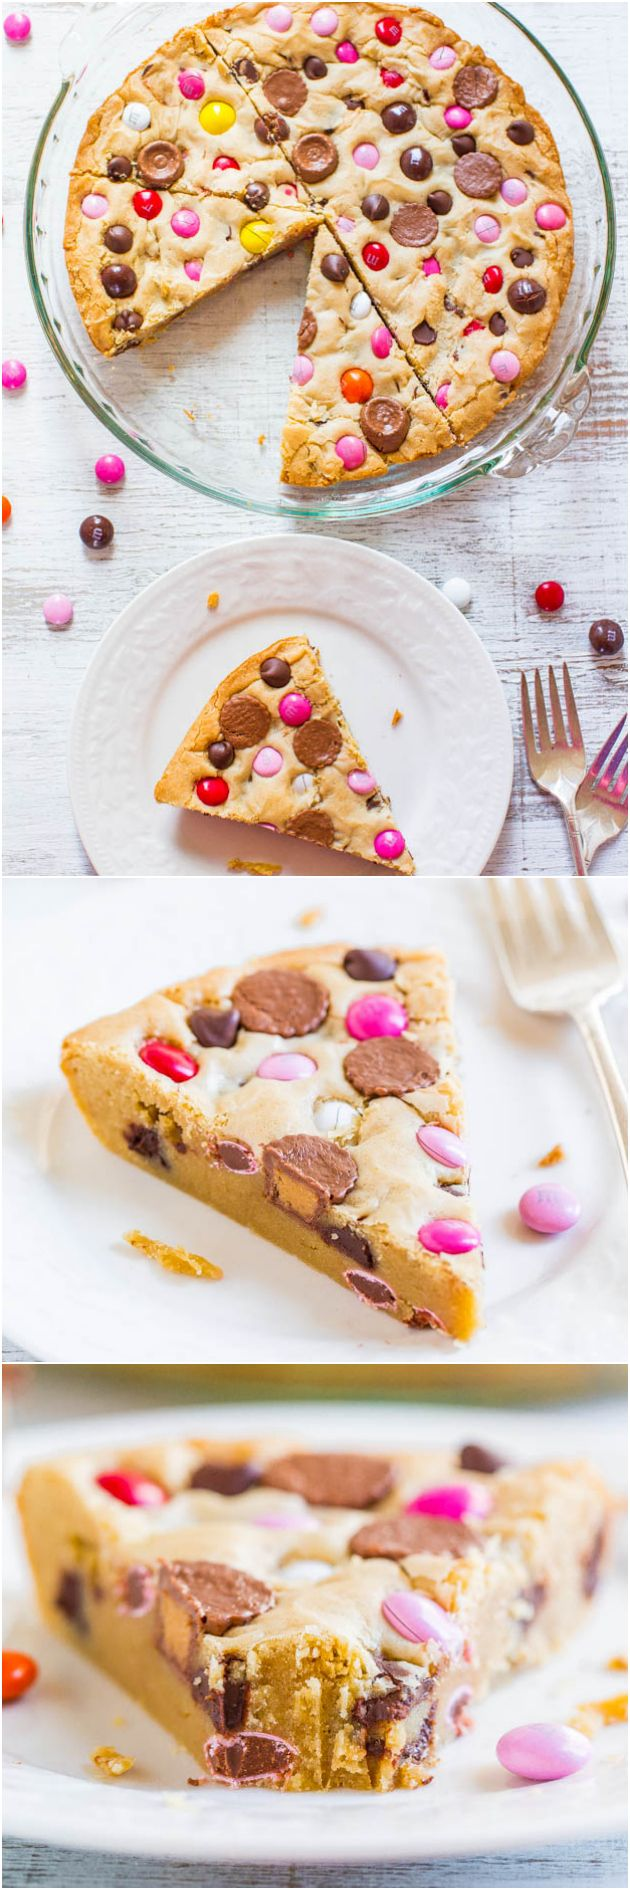 Loaded Soft and Chewy M&M Cookie Pie - If you like M&M cookies, you'll love this biggie version! Super easy & always a big hit!